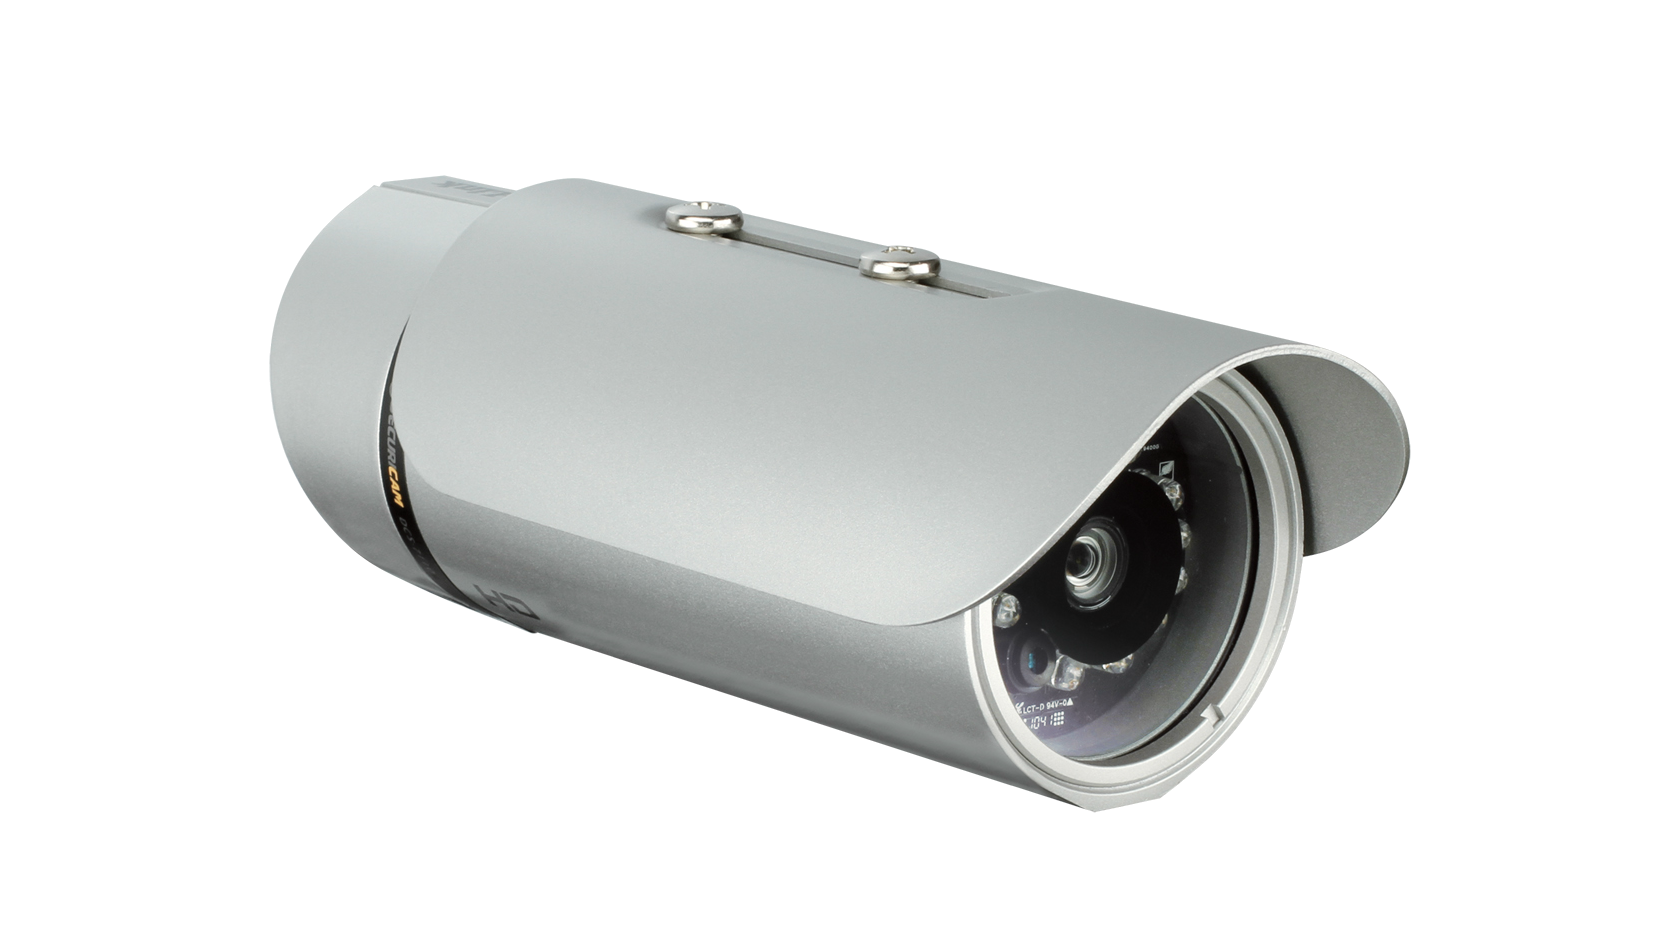 DRIVER FOR D-LINK DCS-7110 REV.B IP CAMERA